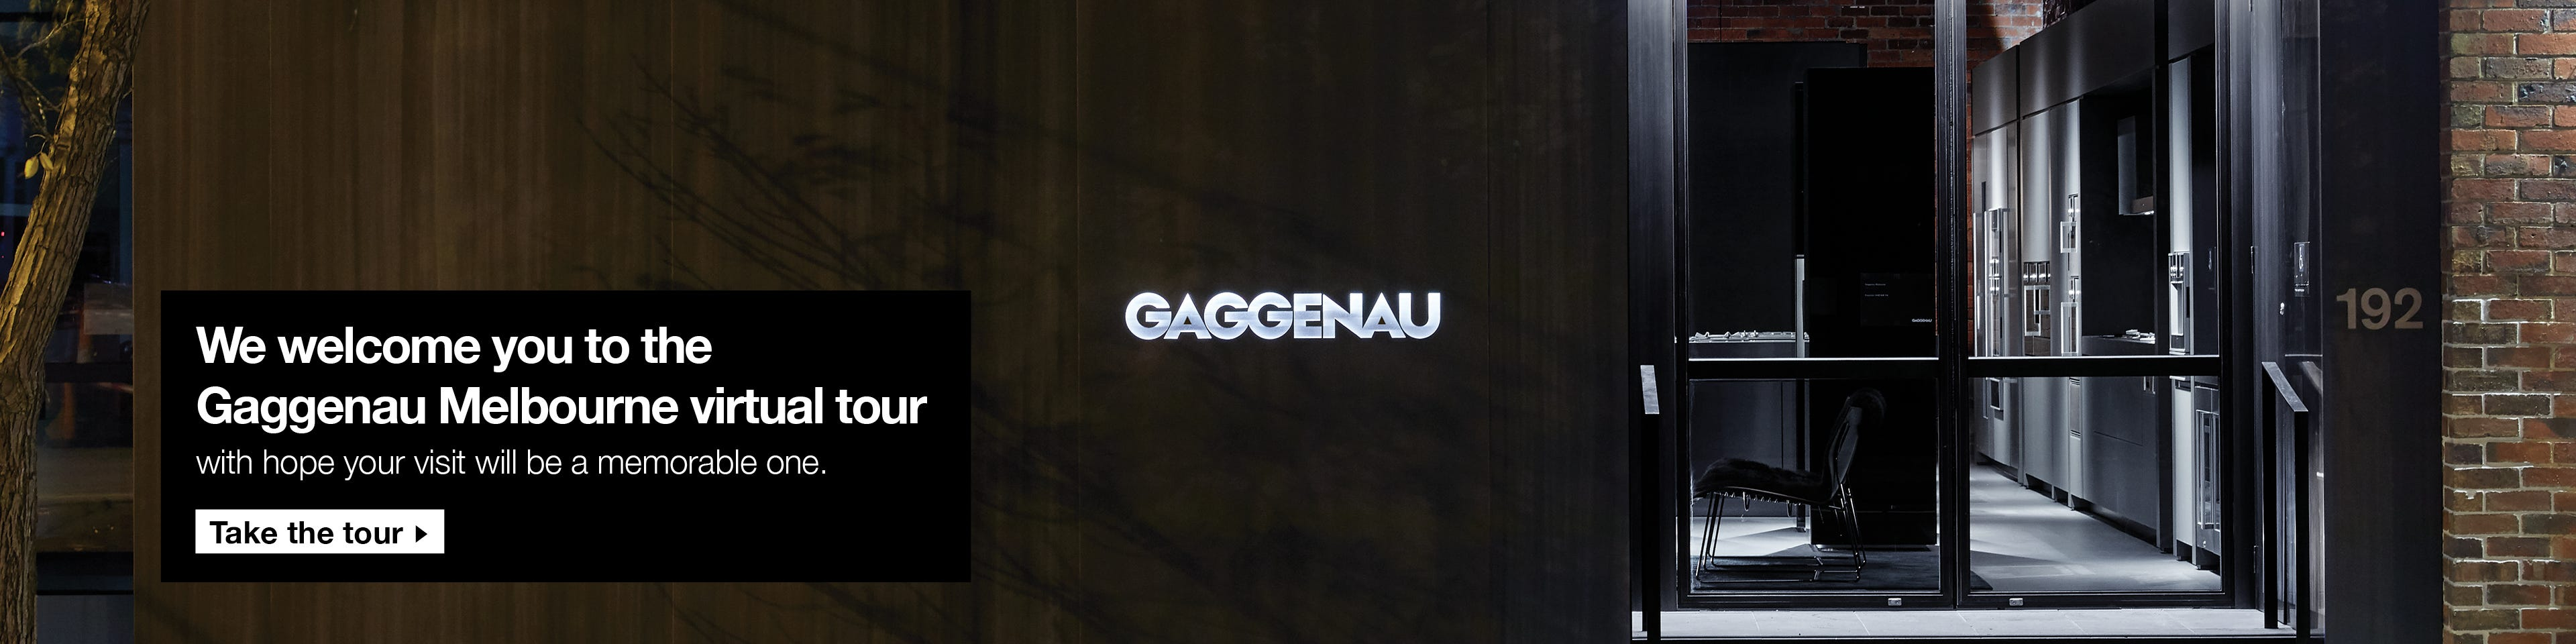 We welcome you to the Gaggenau Melbourne virtual tour with hope your visit will be a memorable one